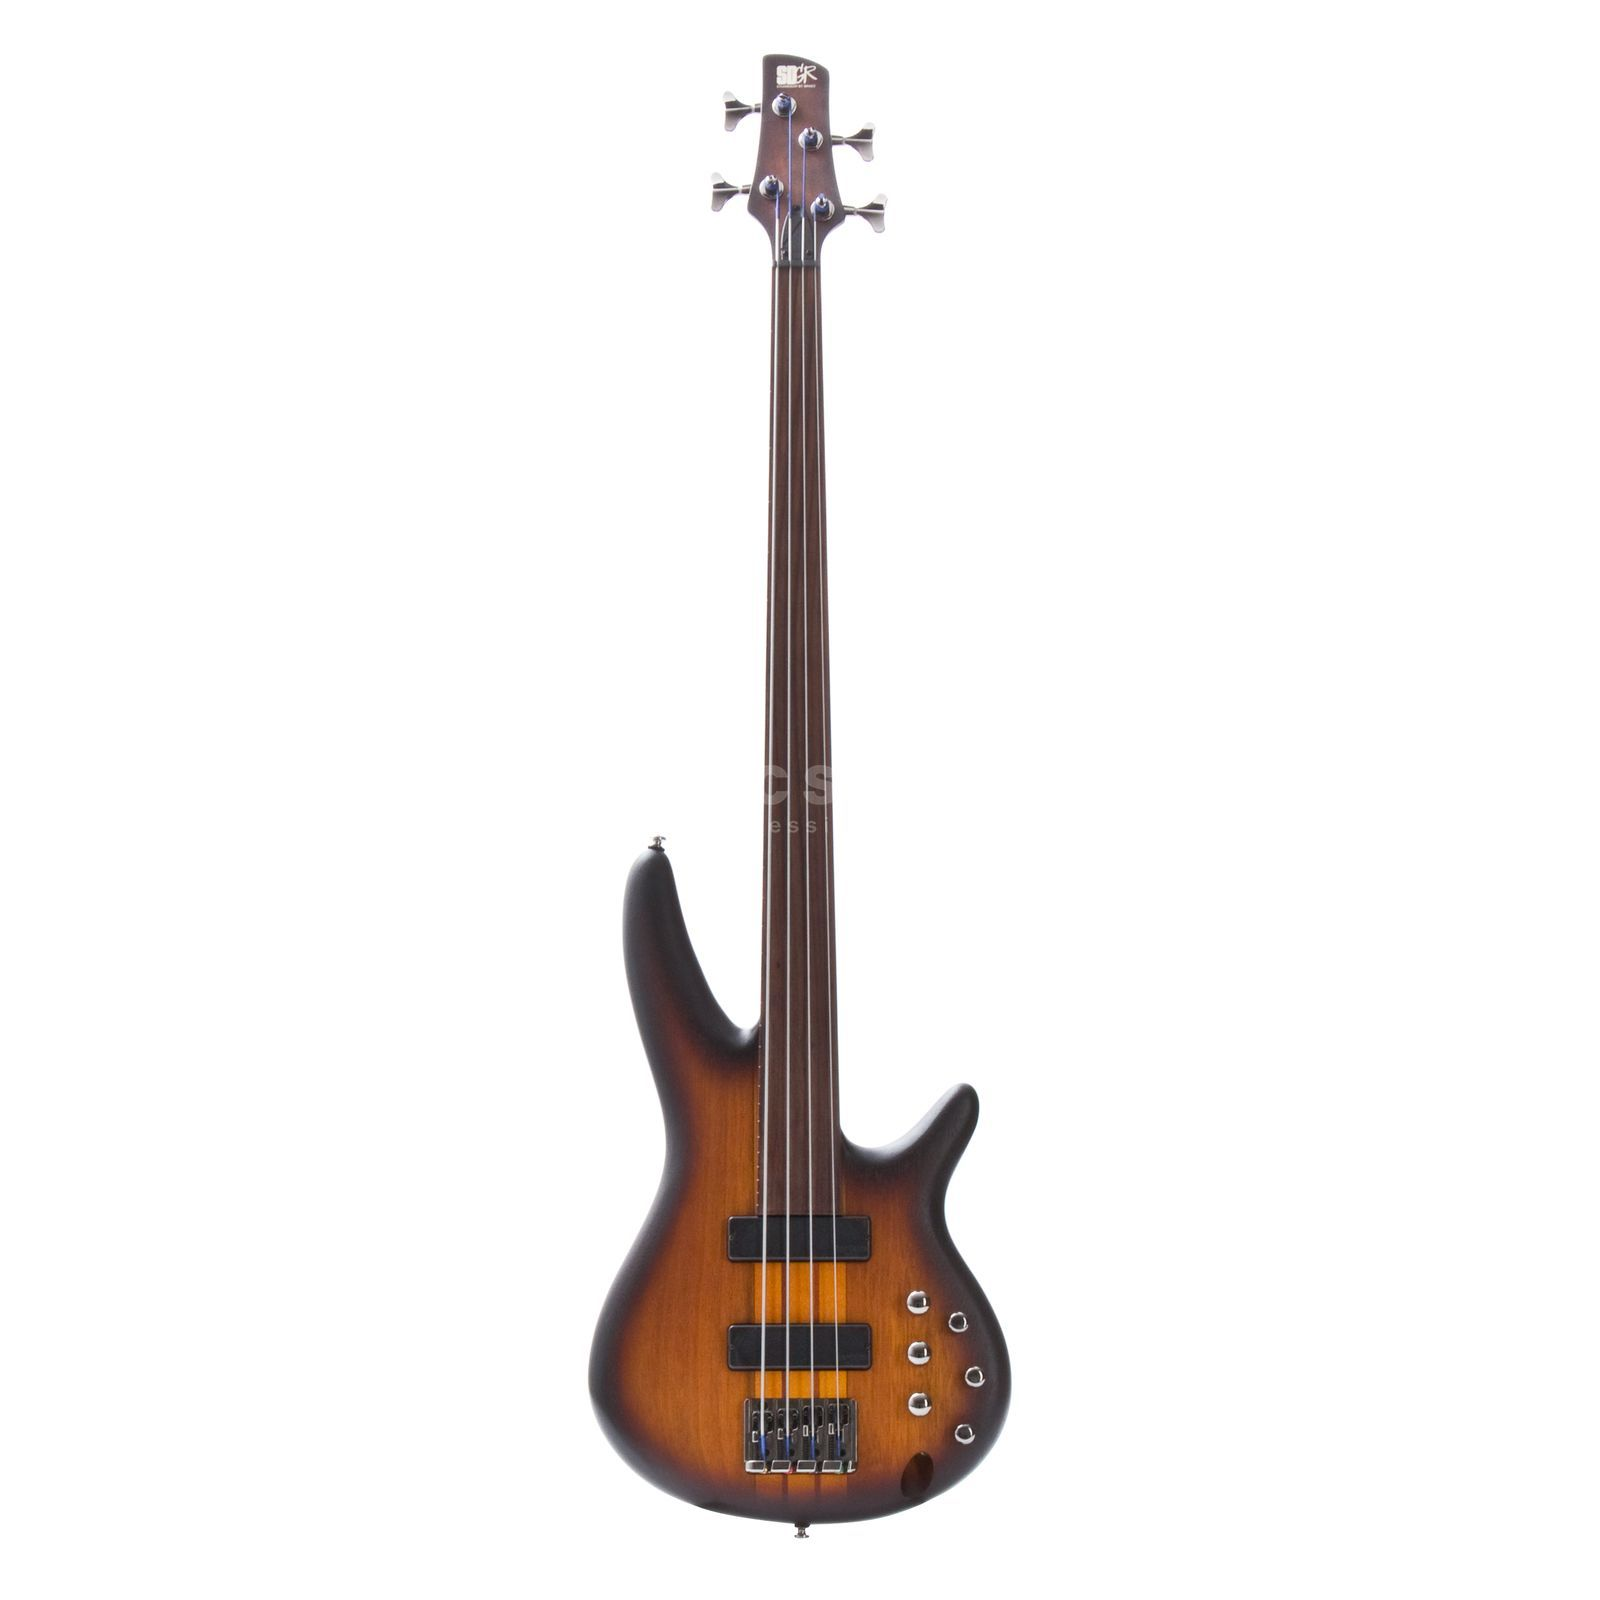 Ibanez SRF 700 BBF Fretless Brown Burst Flat Изображение товара